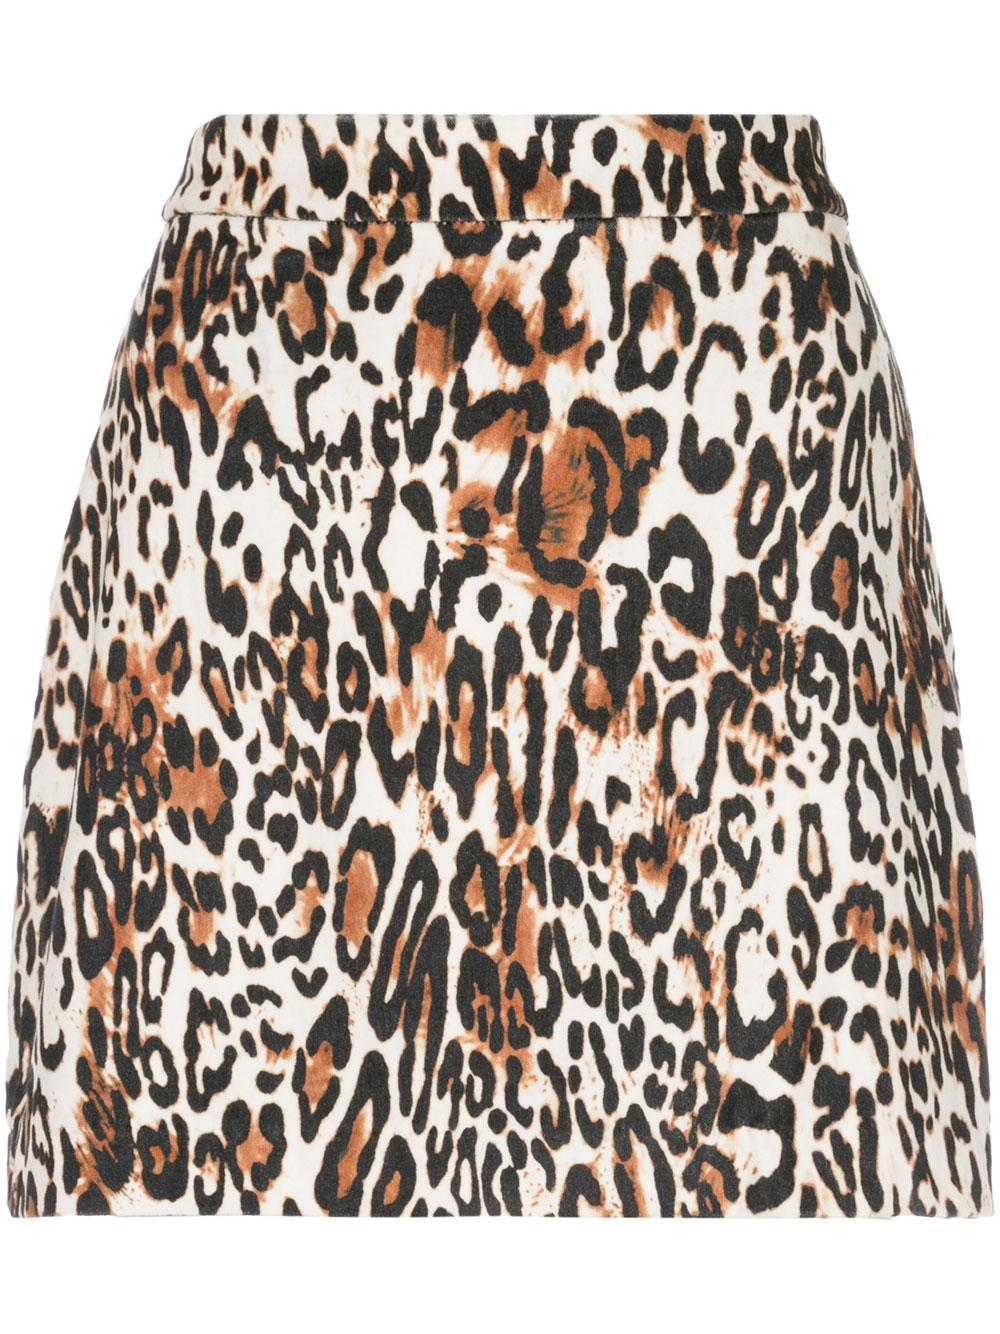 Modern Leopard Mini Skirt